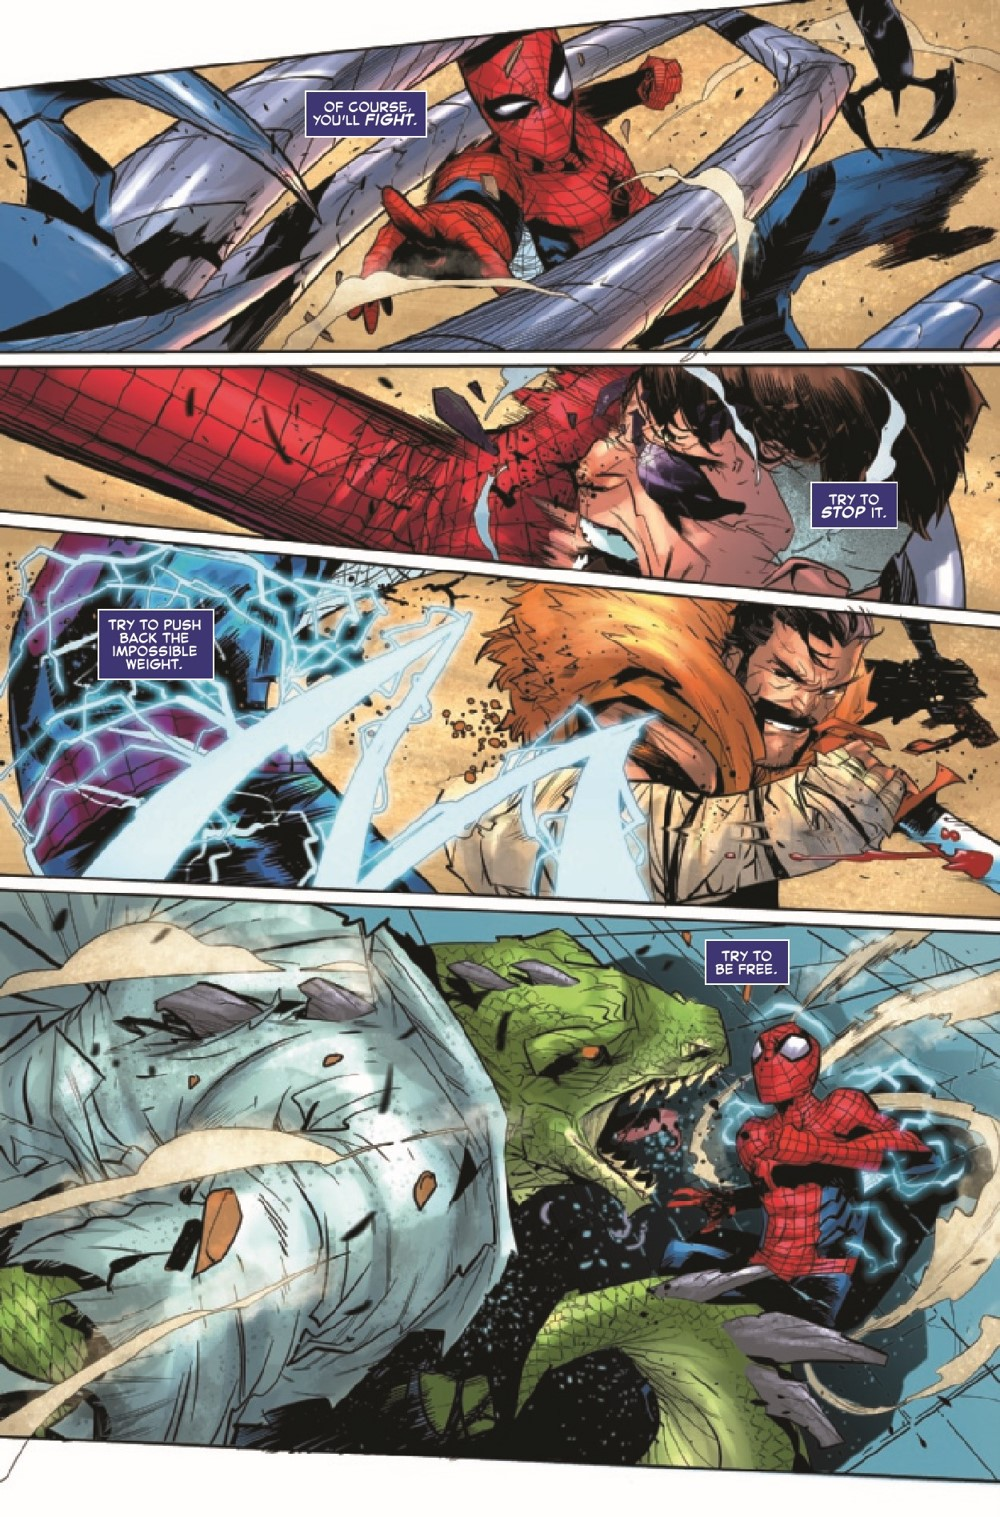 ASM2018071_Preview-4 ComicList Previews: AMAZING SPIDER-MAN #71